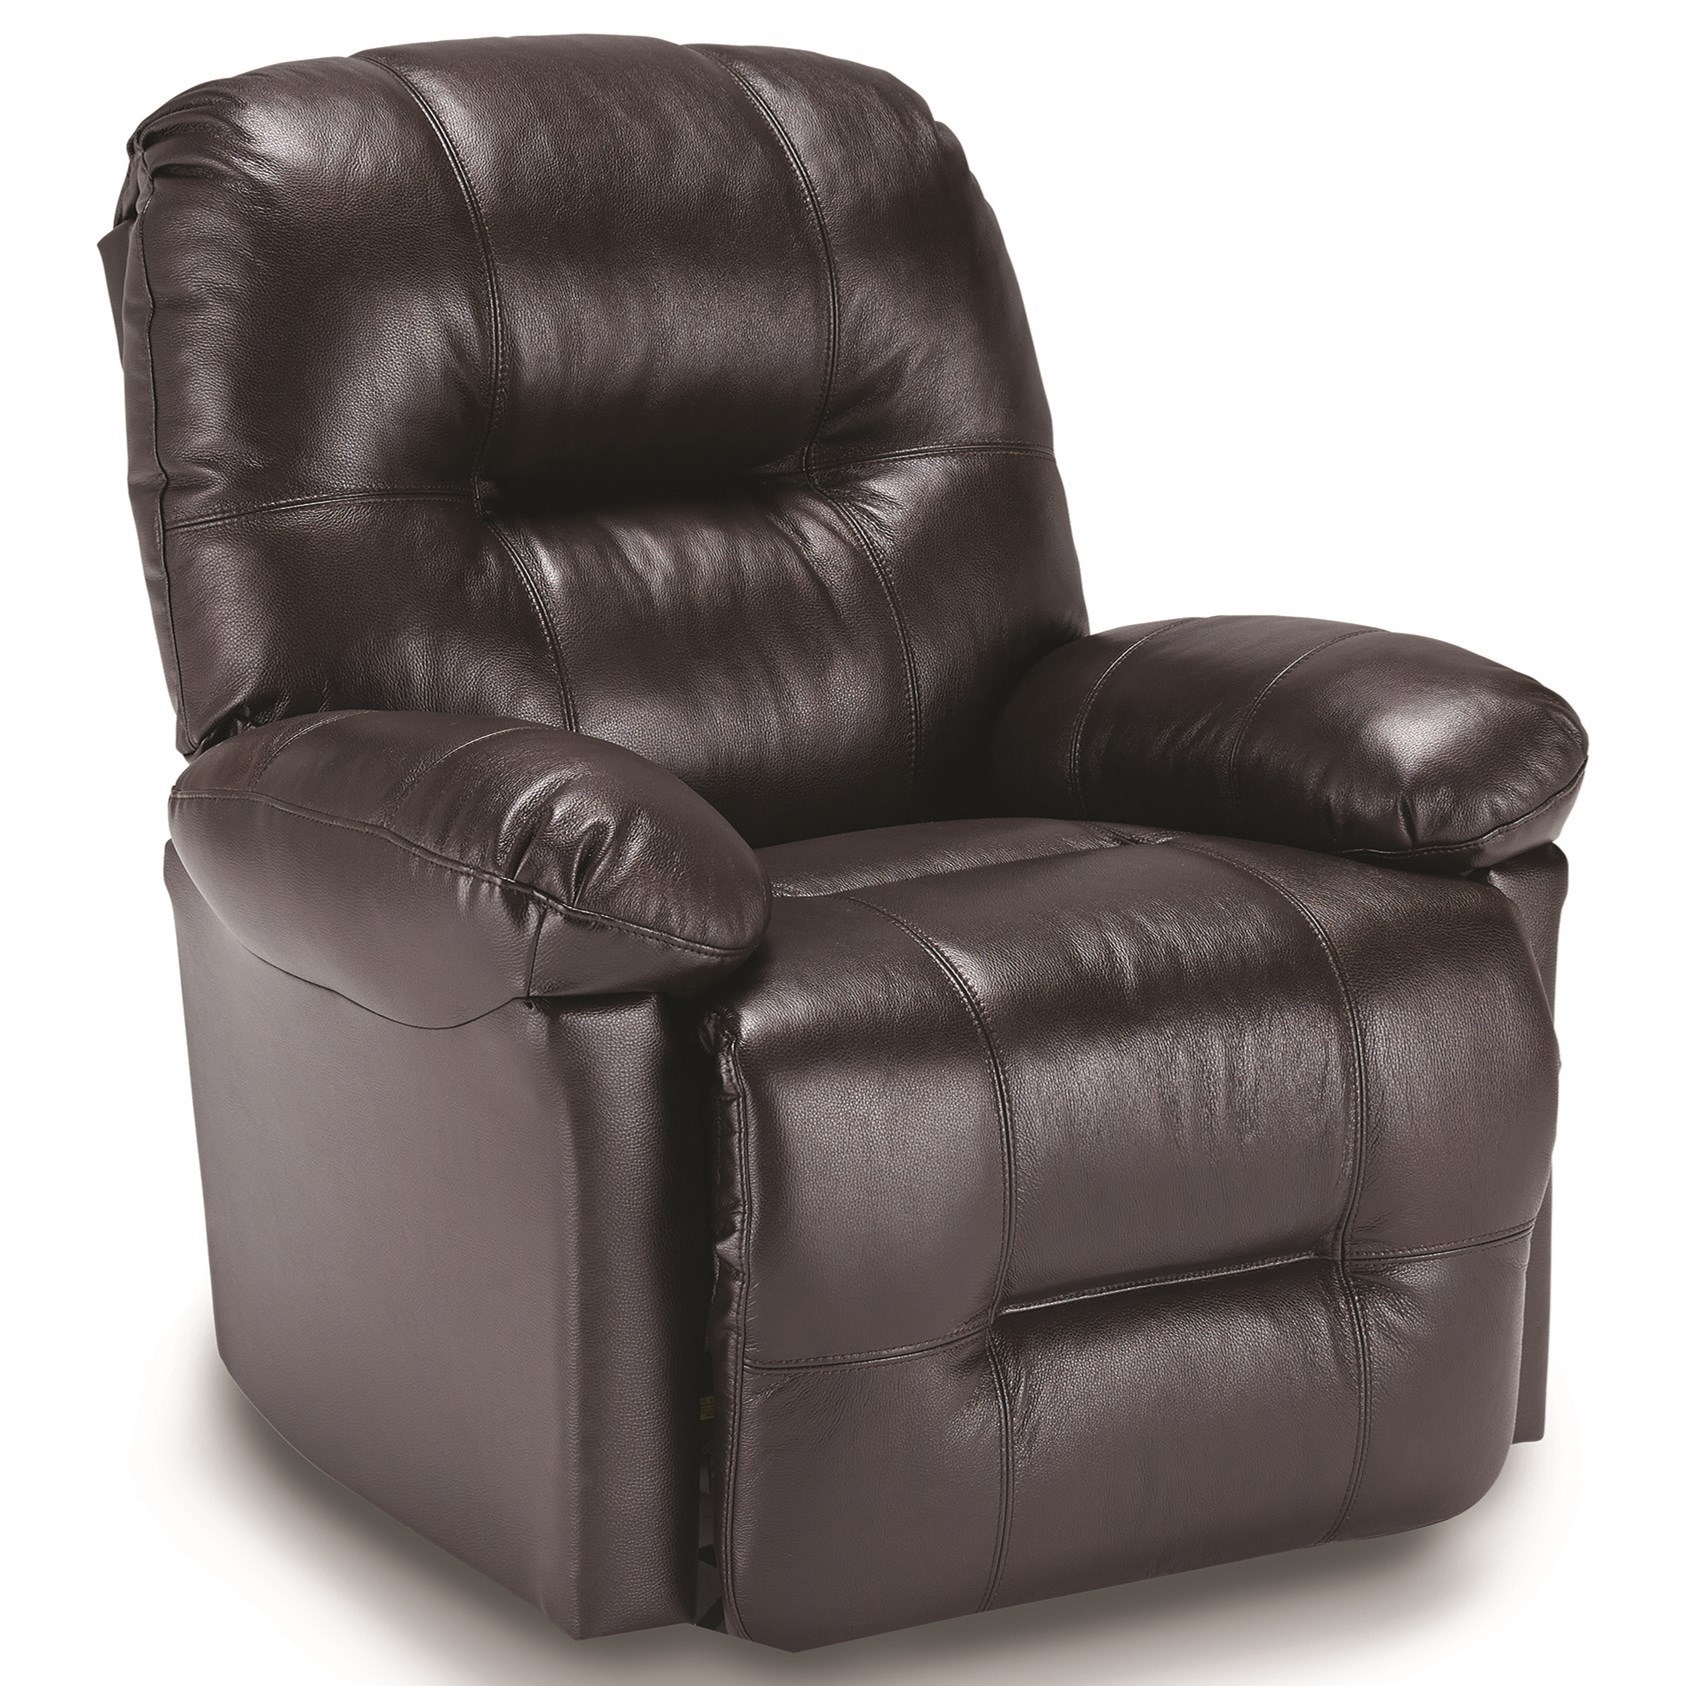 S501 Zaynah Wallhugger Recliner by Best Home Furnishings at Baer's Furniture